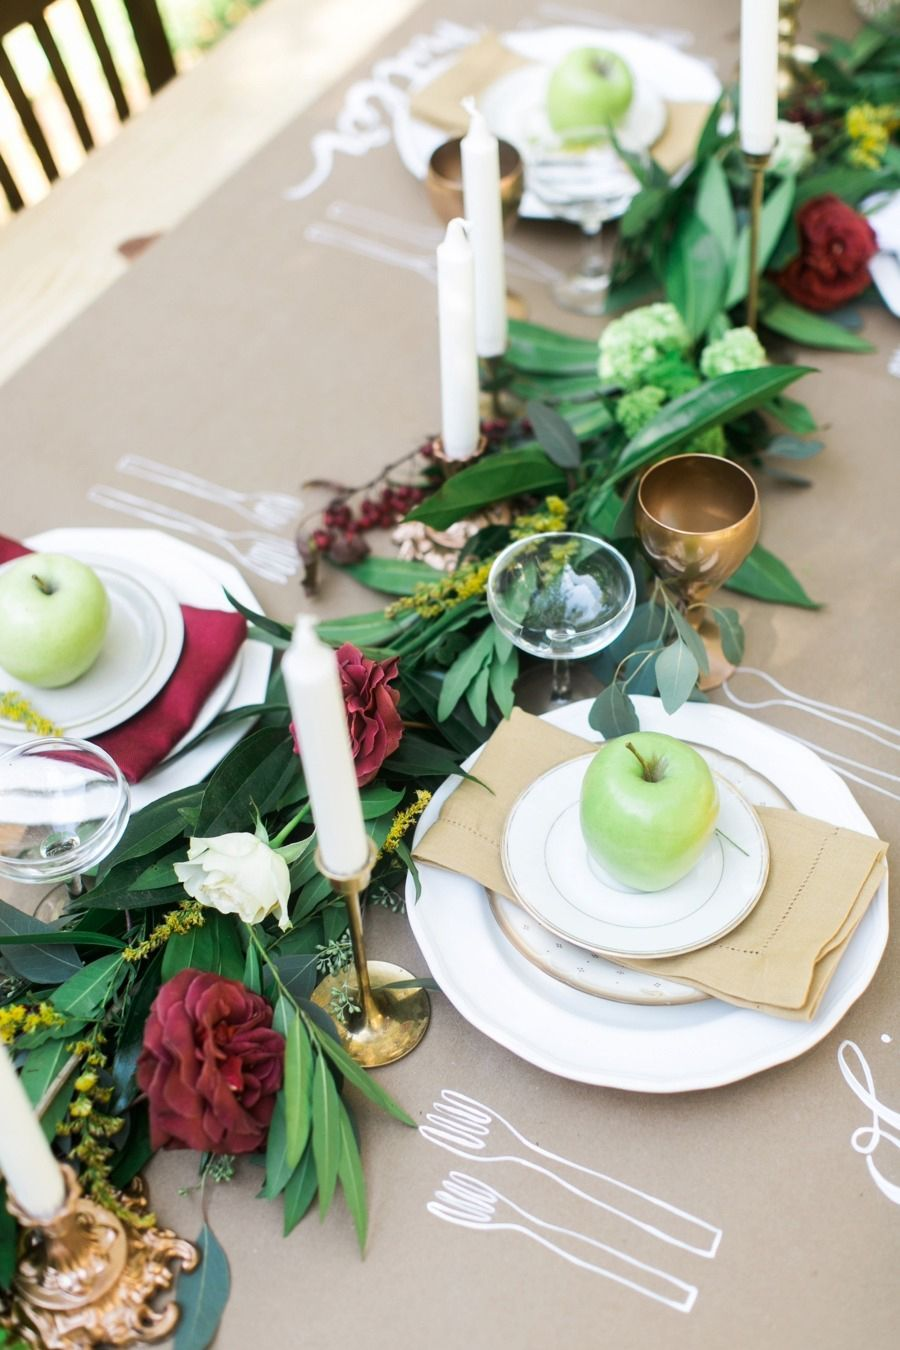 Tablescape Ideas Bridal Shower Tablescape Ideas  How To Decorate For A Bridal Shower